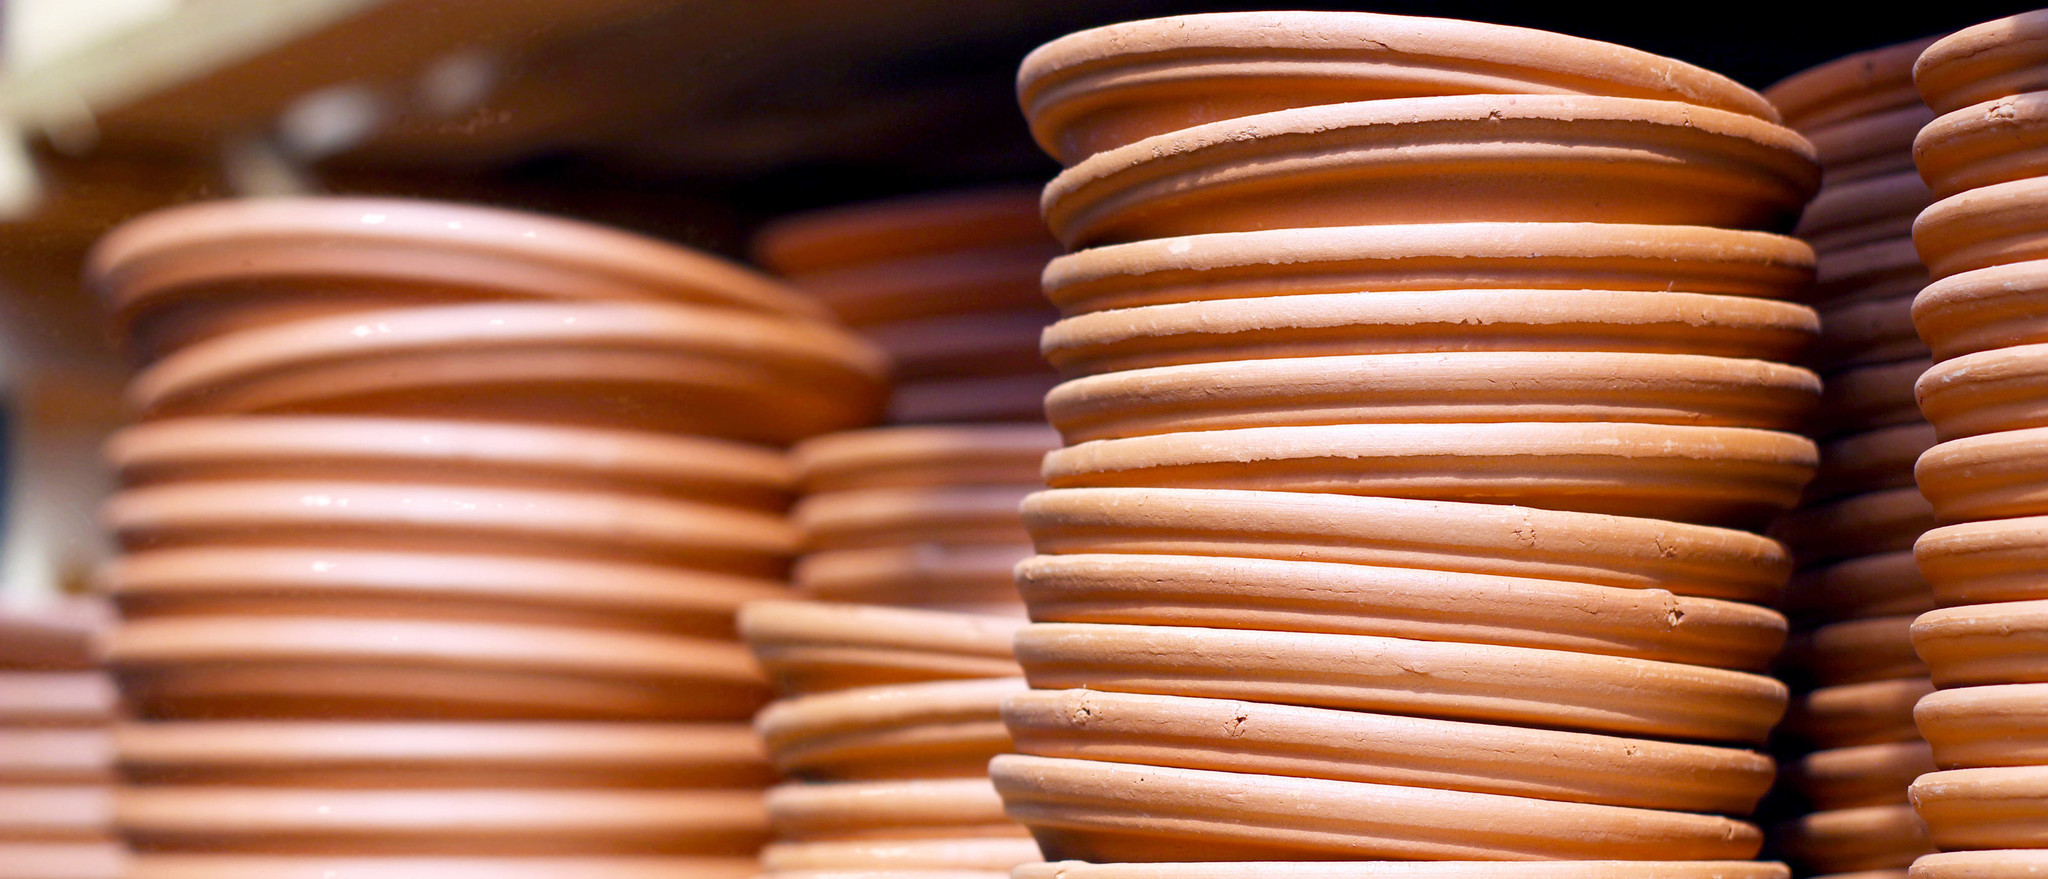 Earthy Turns: Holding, Creating and Making Terracotta Pottery